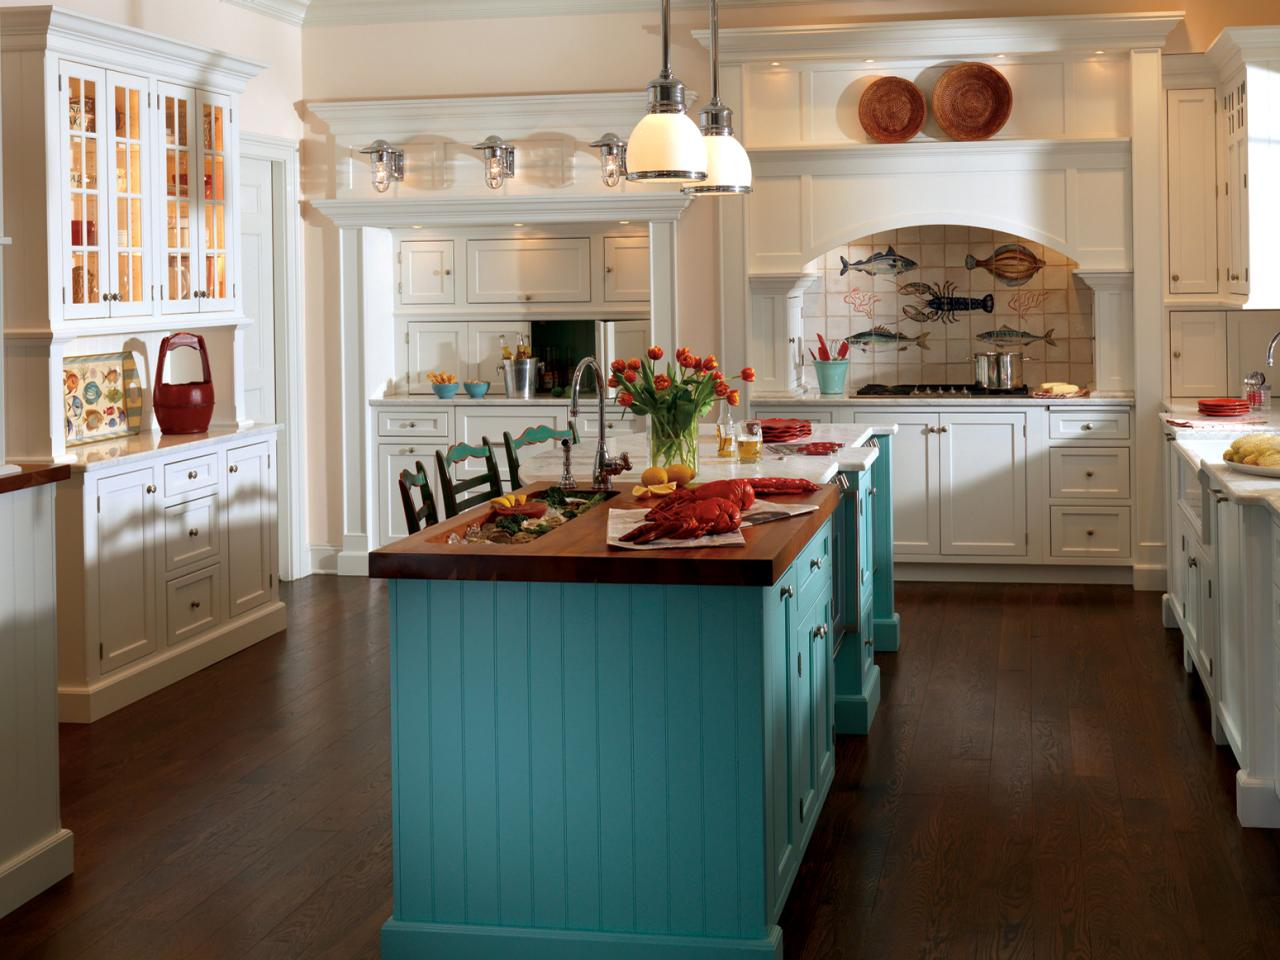 lovely Different Color Cabinets In Kitchen #3: Boost Color With Texture